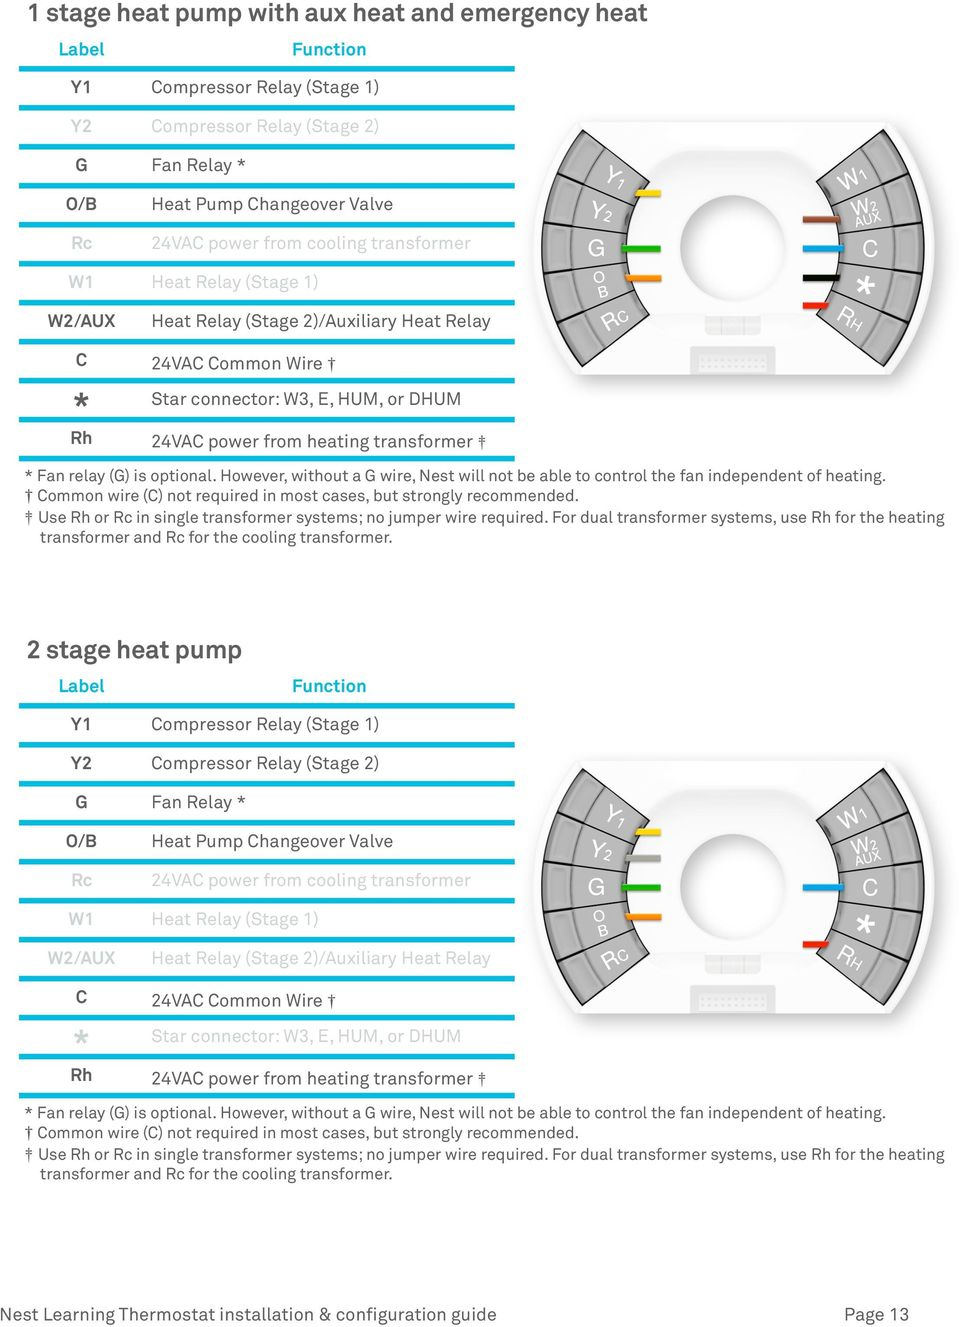 Nest Thermostat Wiring Diagram Heat Pump | Wiring Diagram - Nest E Wiring Diagram Heat Pump